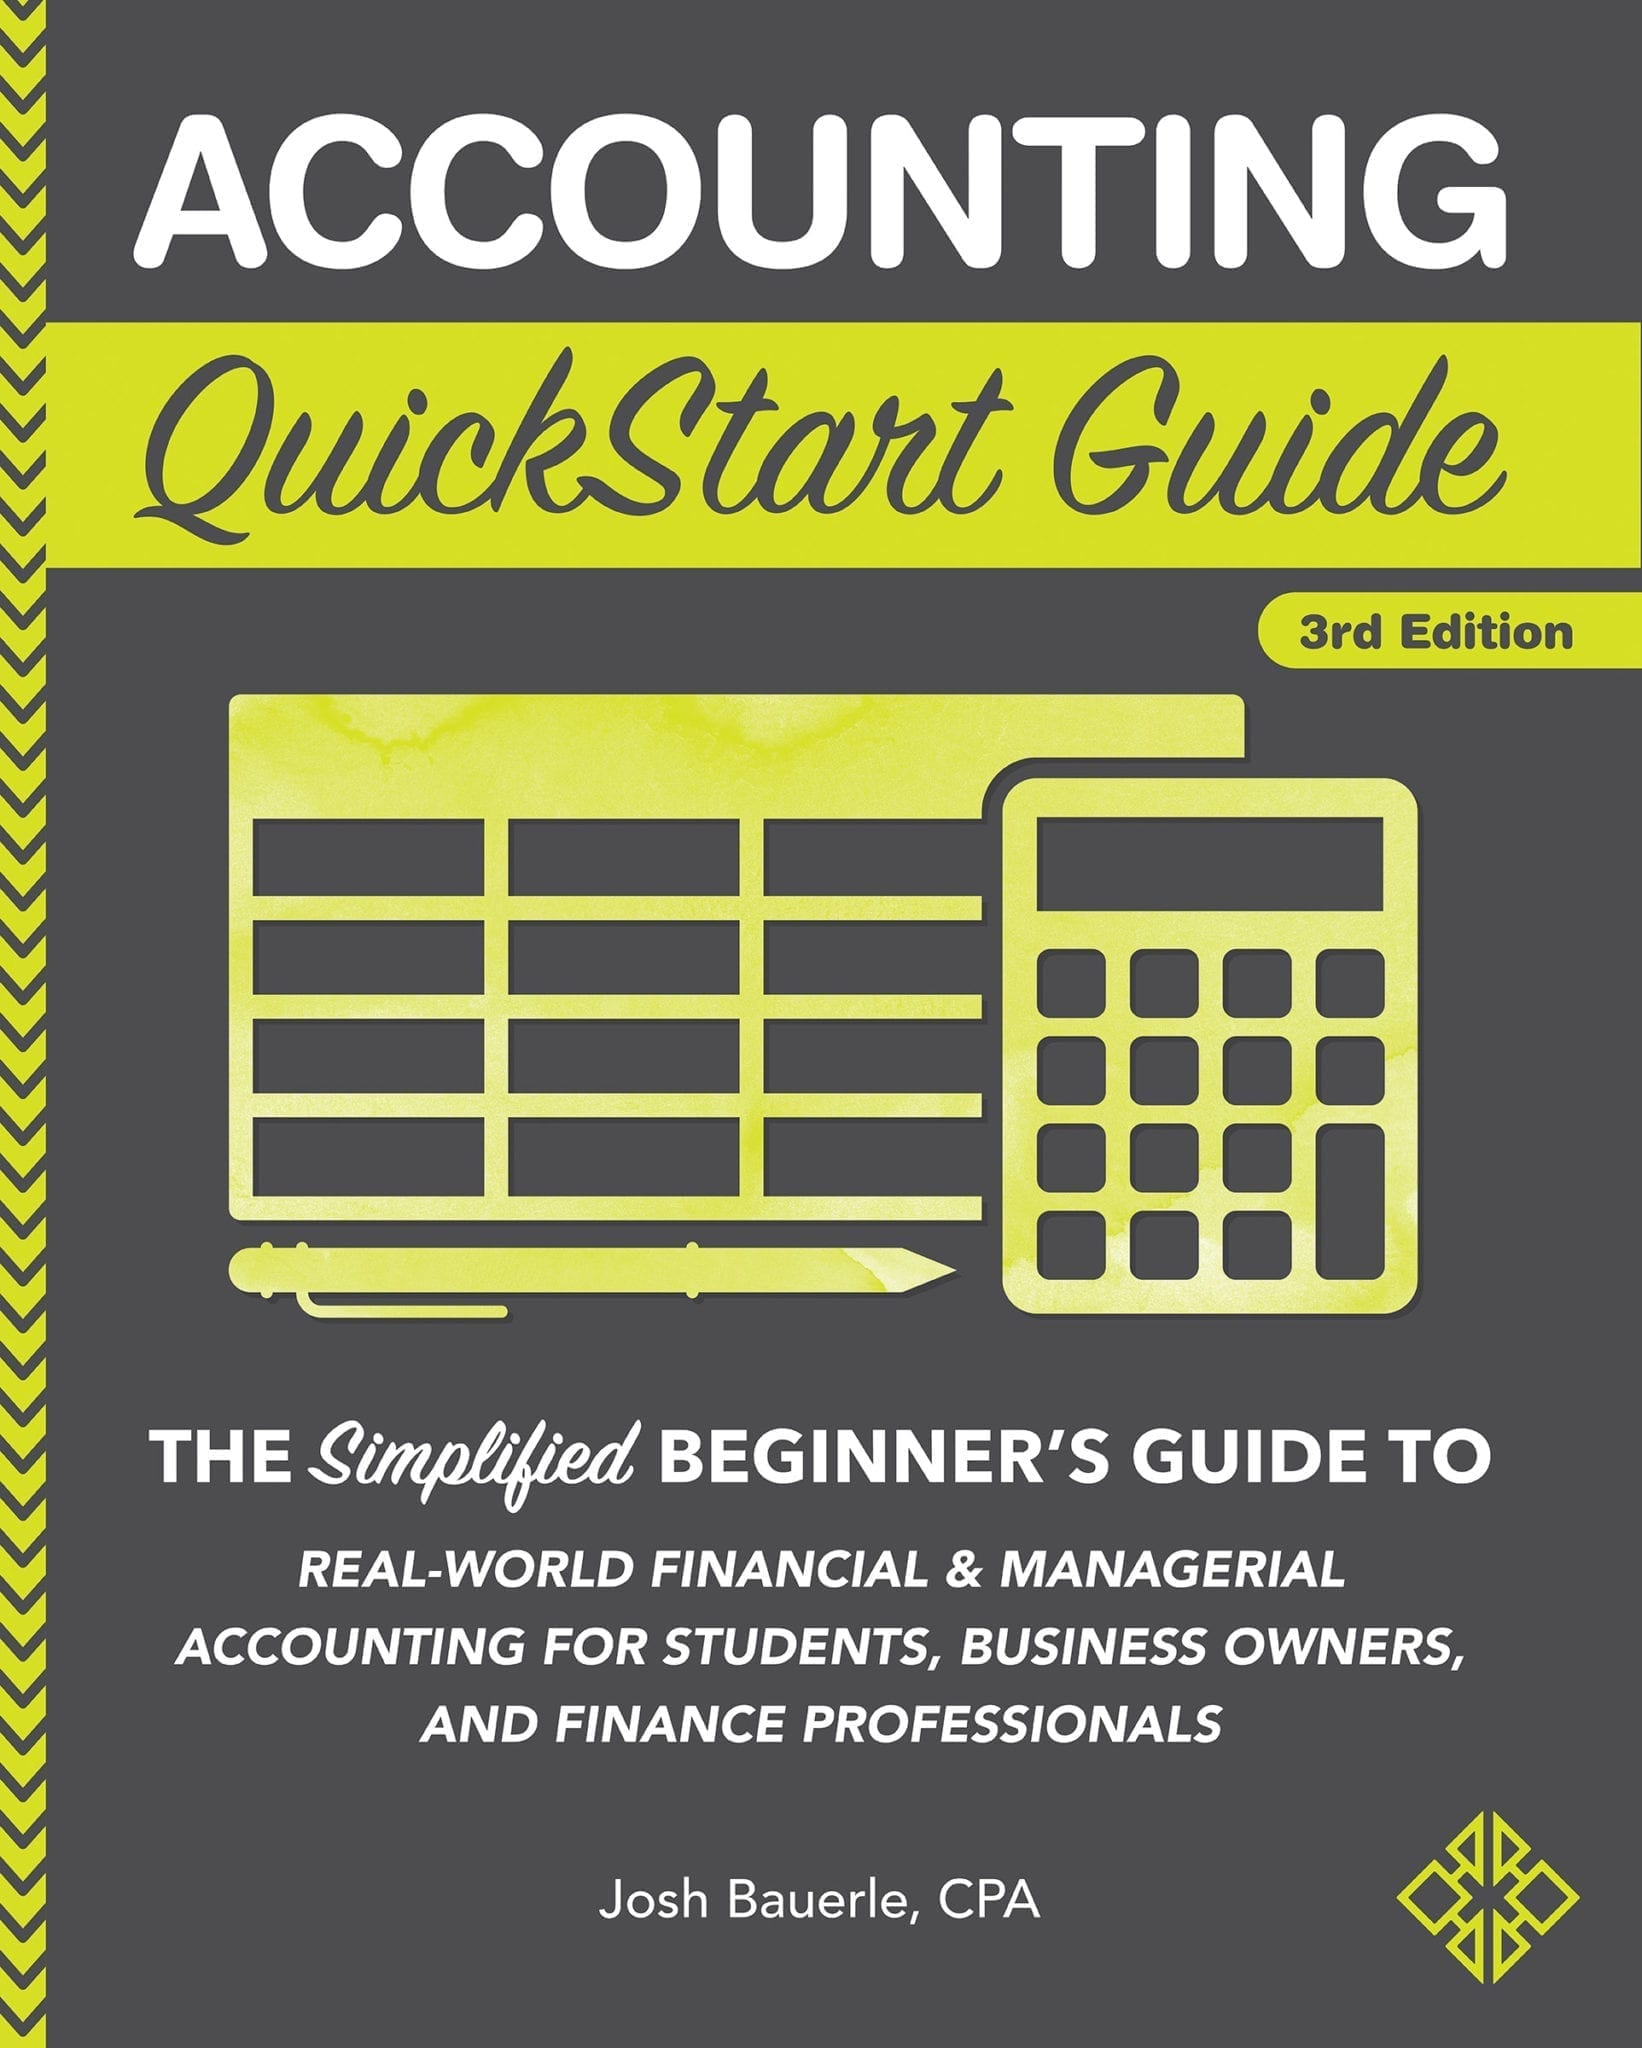 Accounting QuickStart Guide by Josh Bauerle CPA